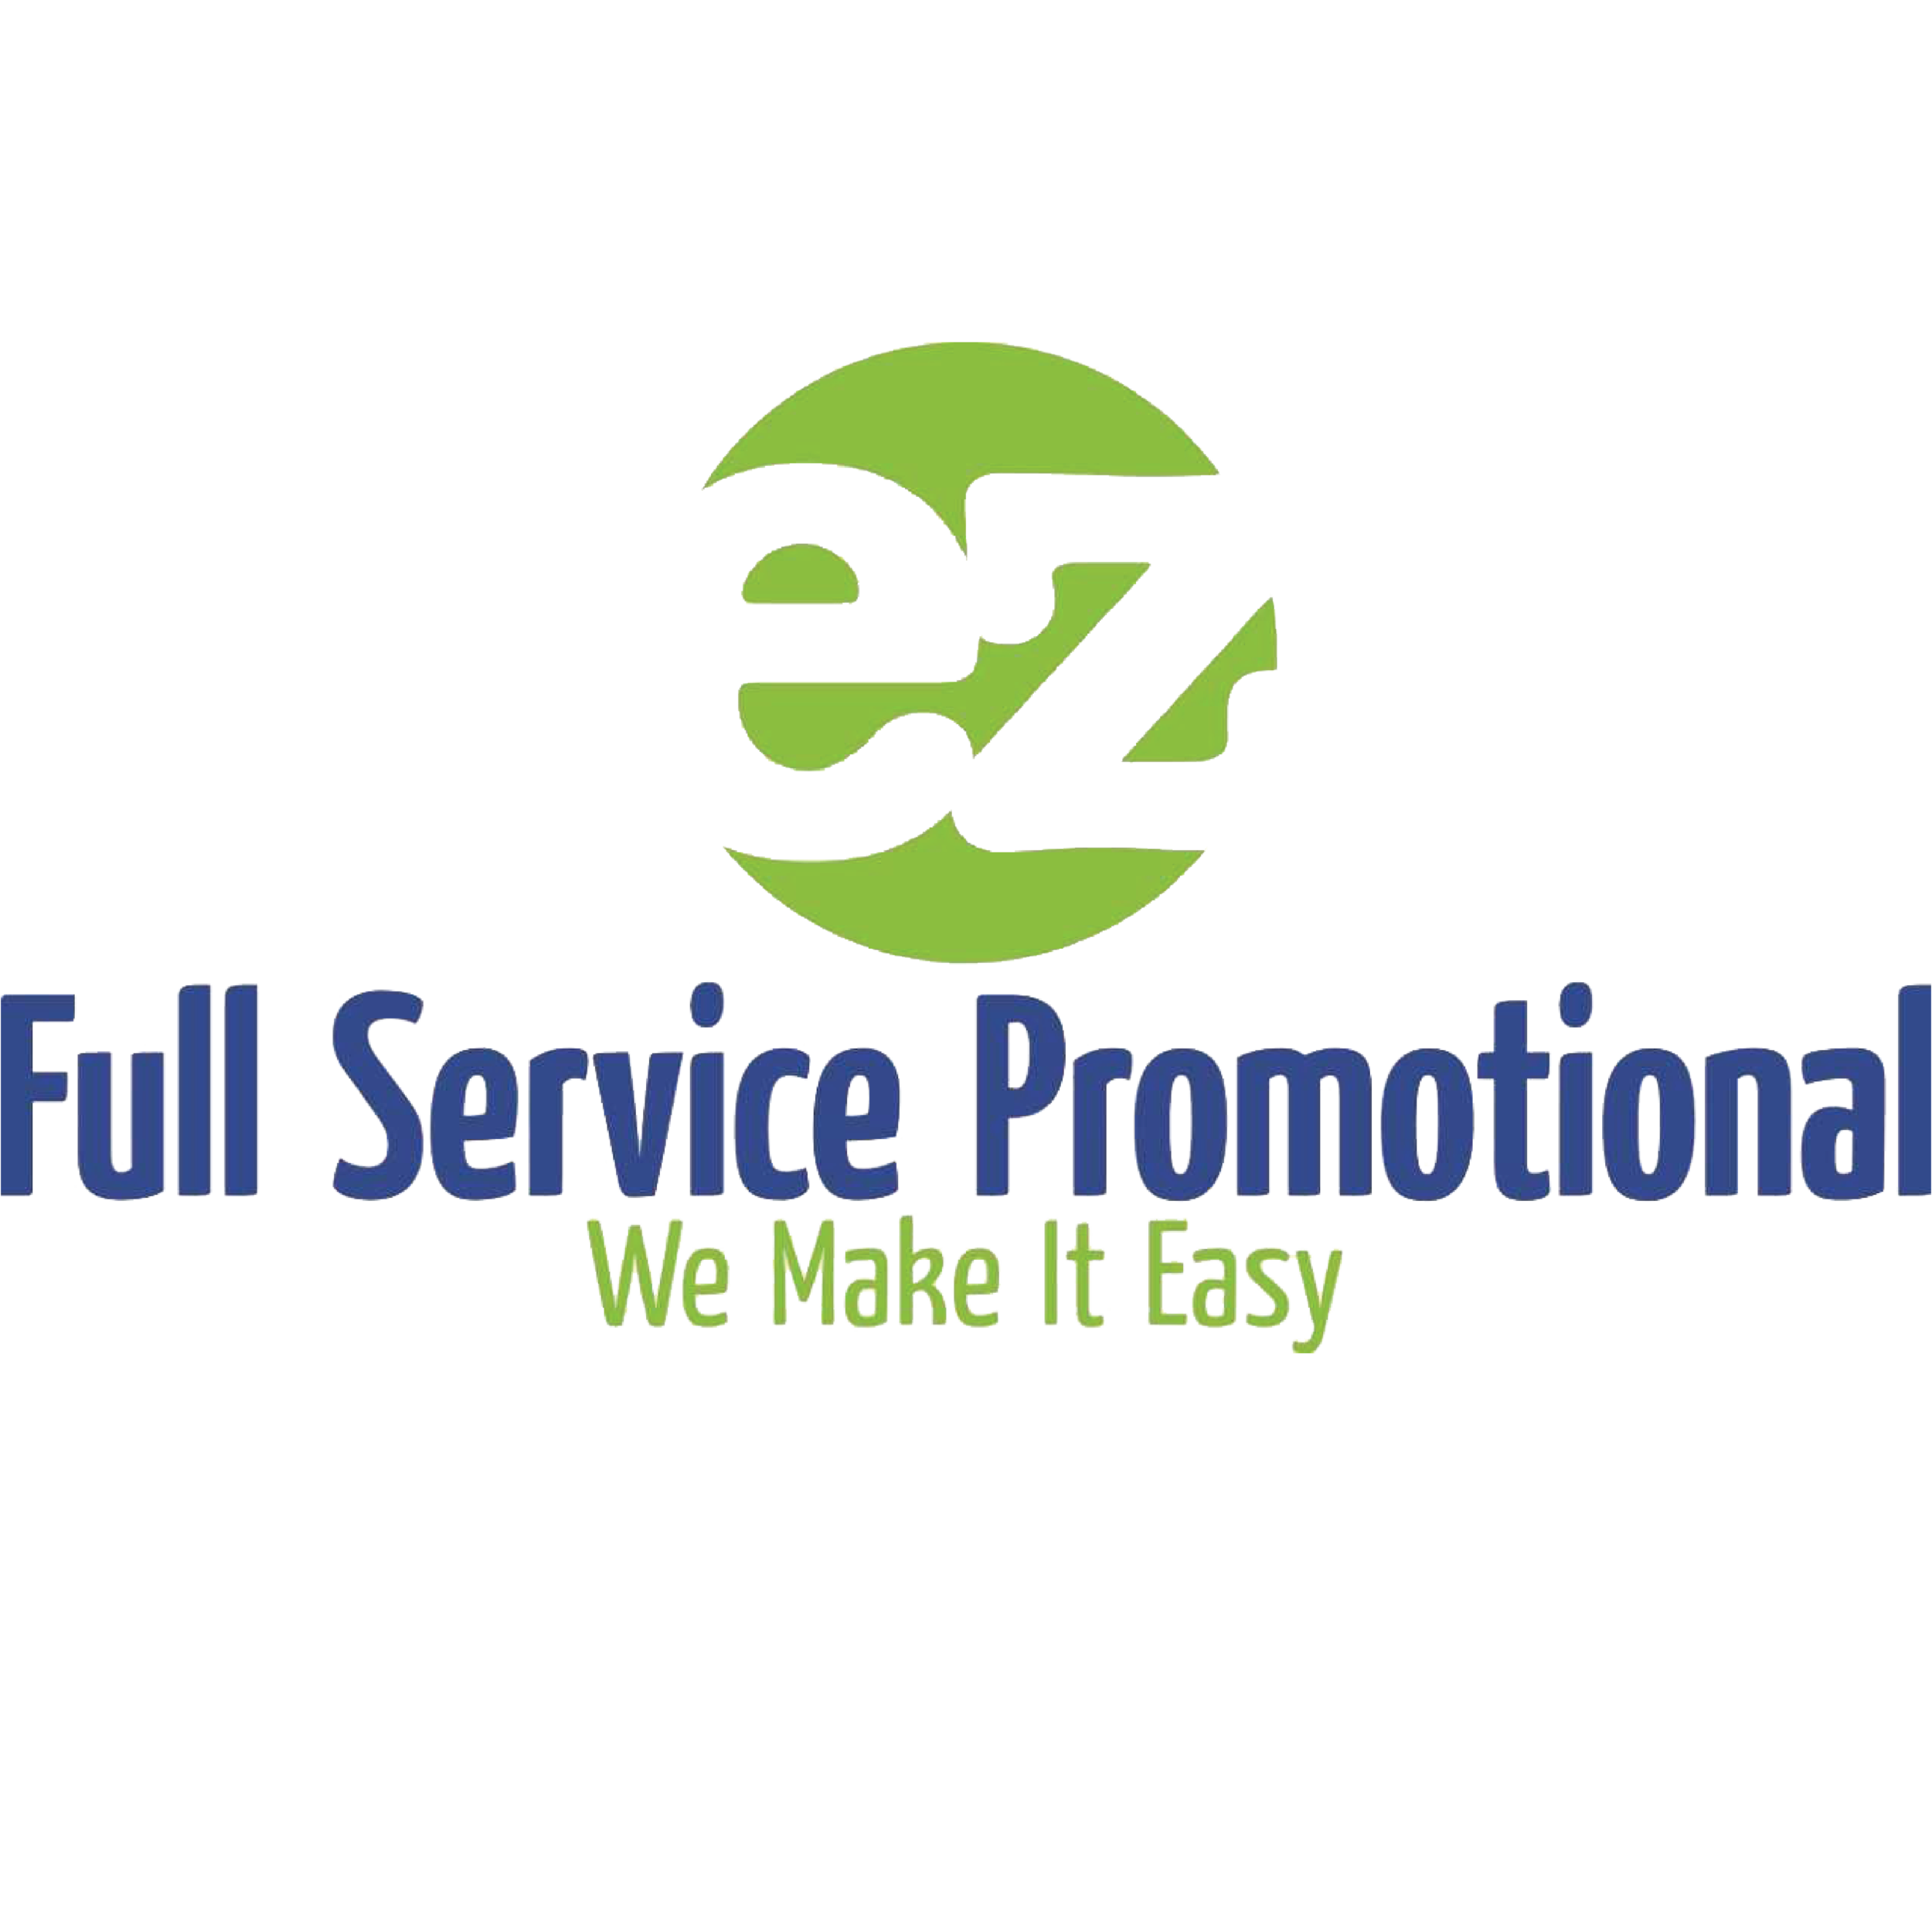 Full Service Promotional.jpg.png